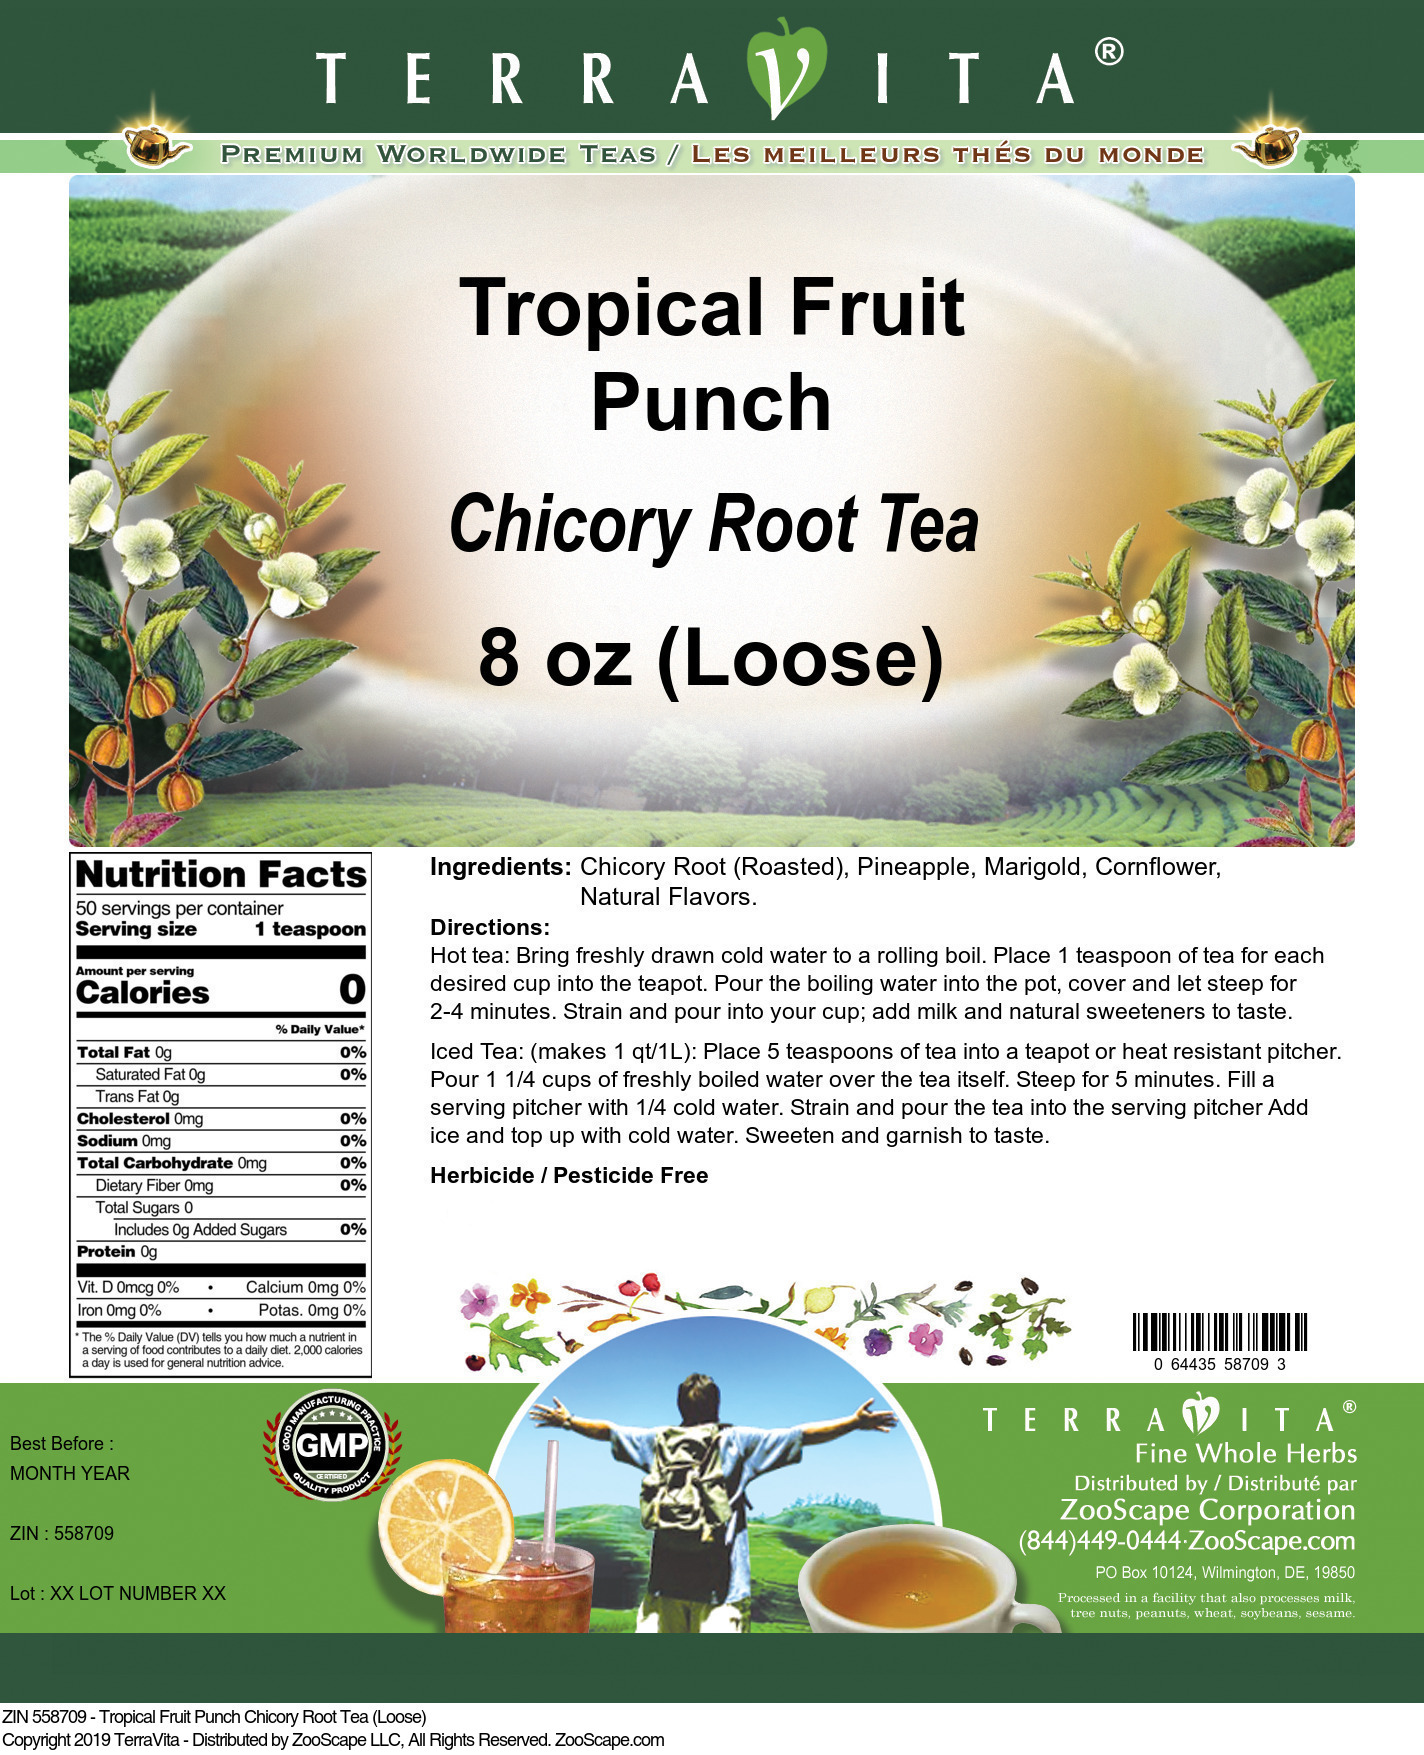 Tropical Fruit Punch Chicory Root Tea (Loose)